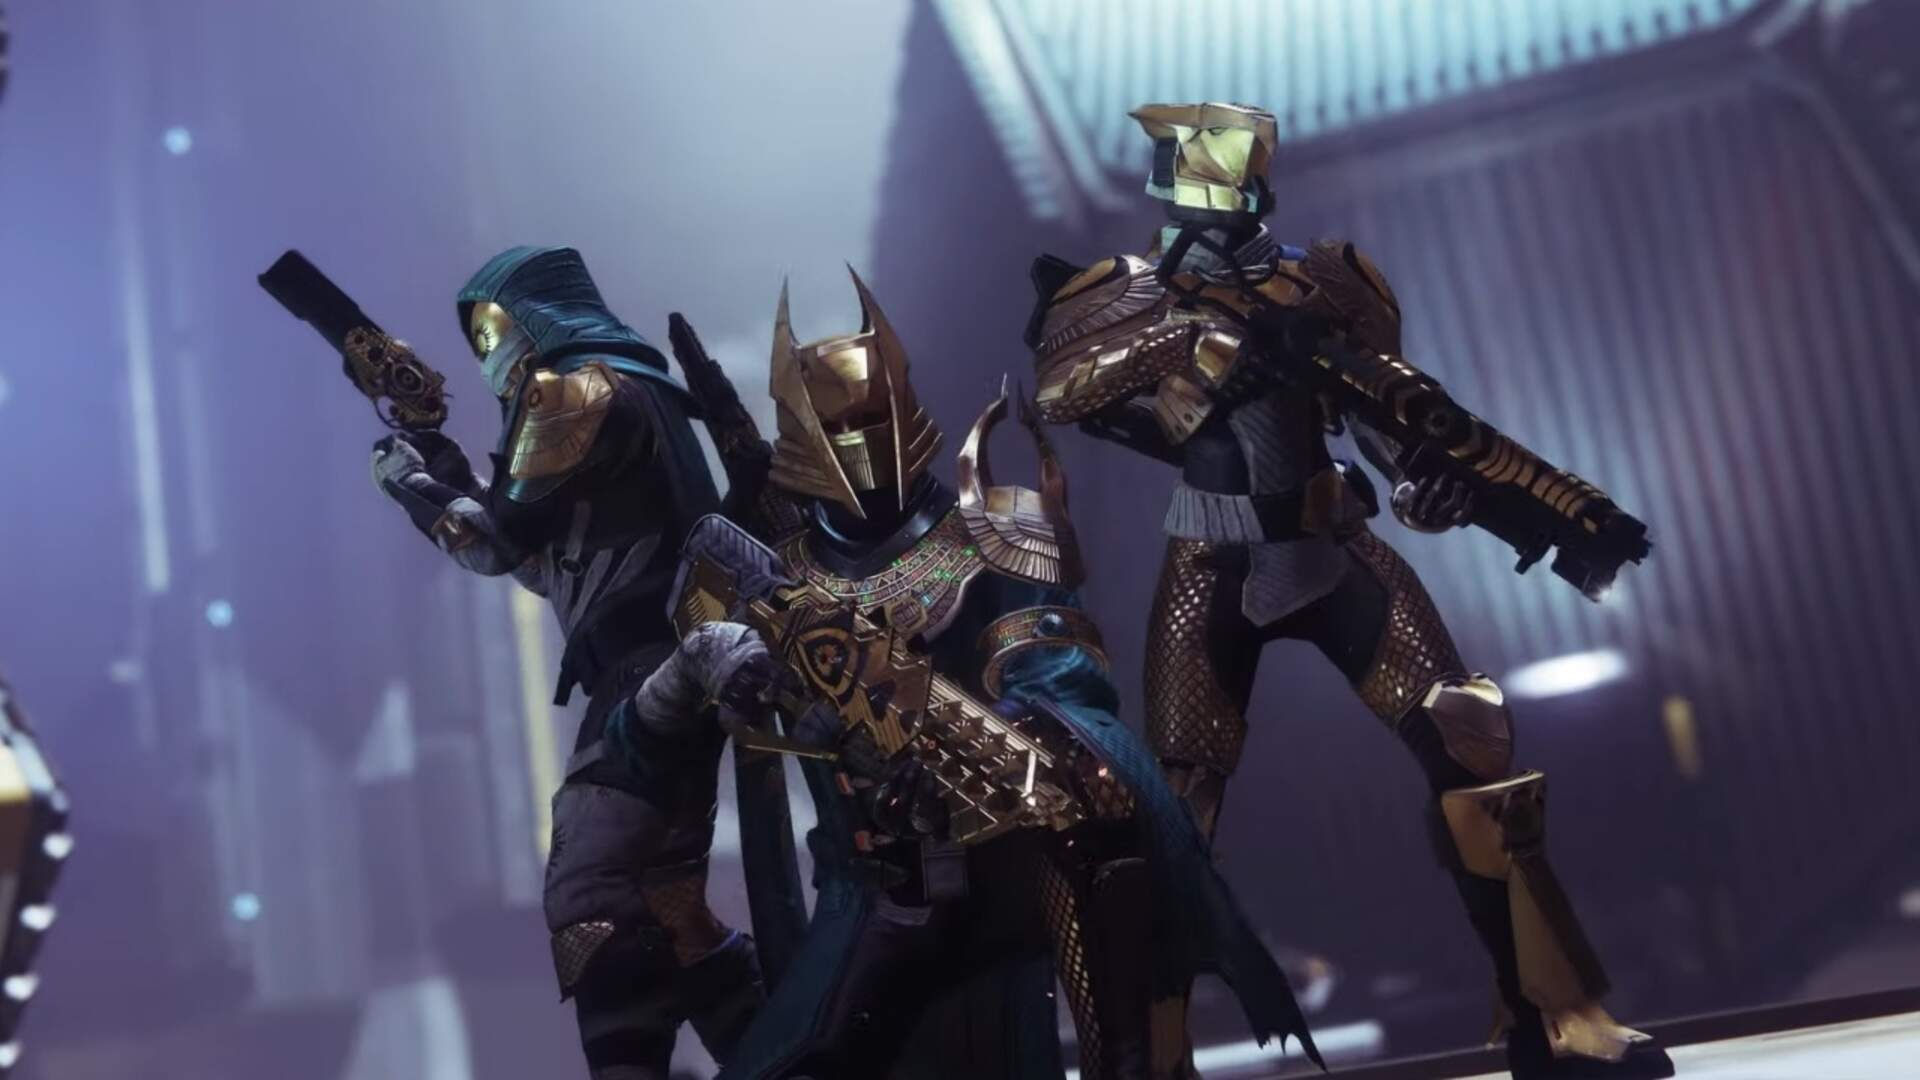 Destiny 2's Next Season Is Bringing Back Trials of Osiris, Its Sweatiest PvP Mode